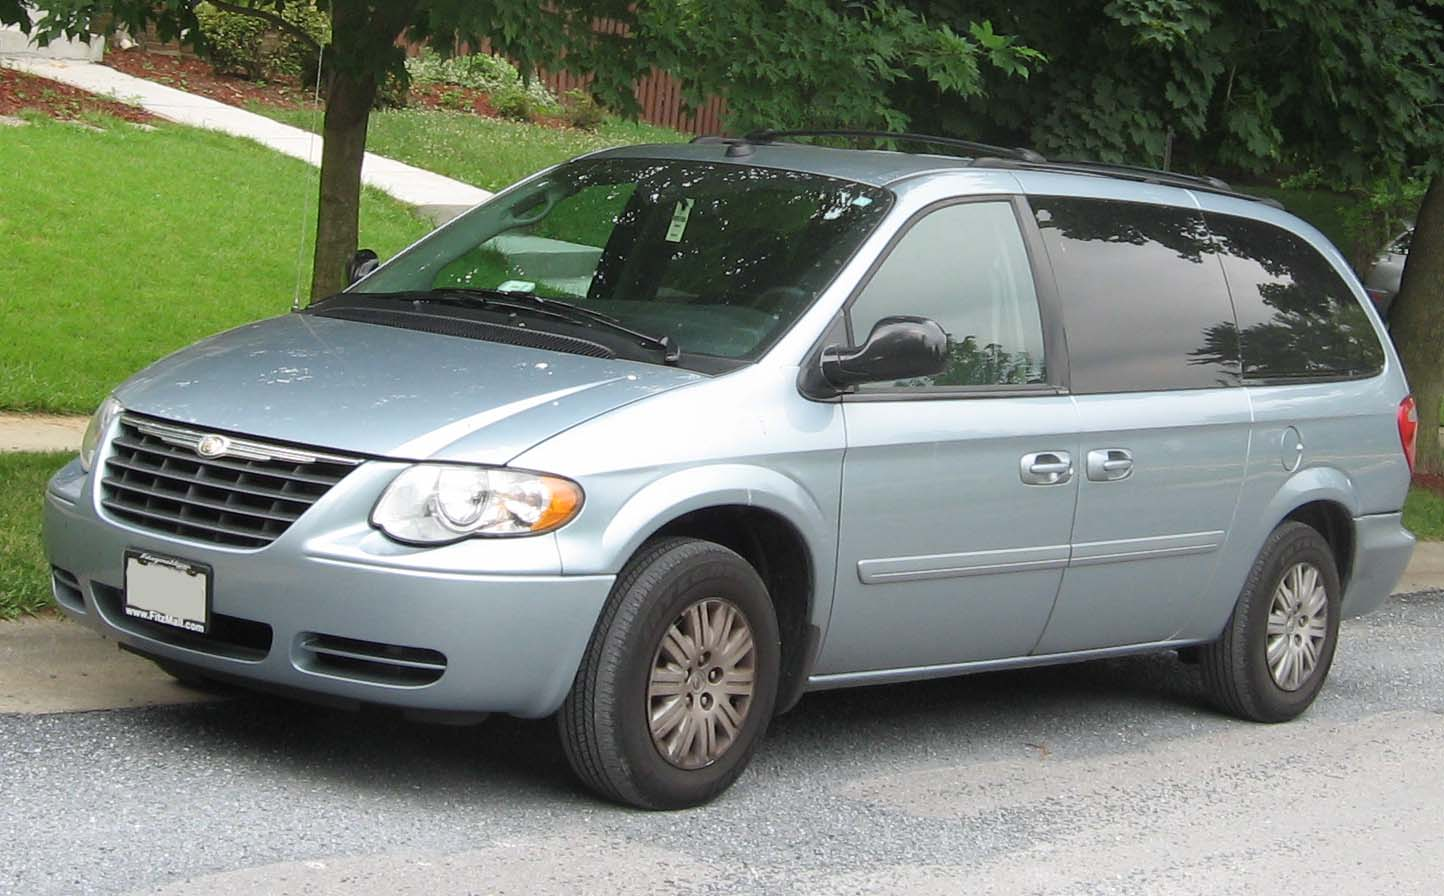 chrysler town and country 2007. Cars Review. Best American Auto & Cars Review